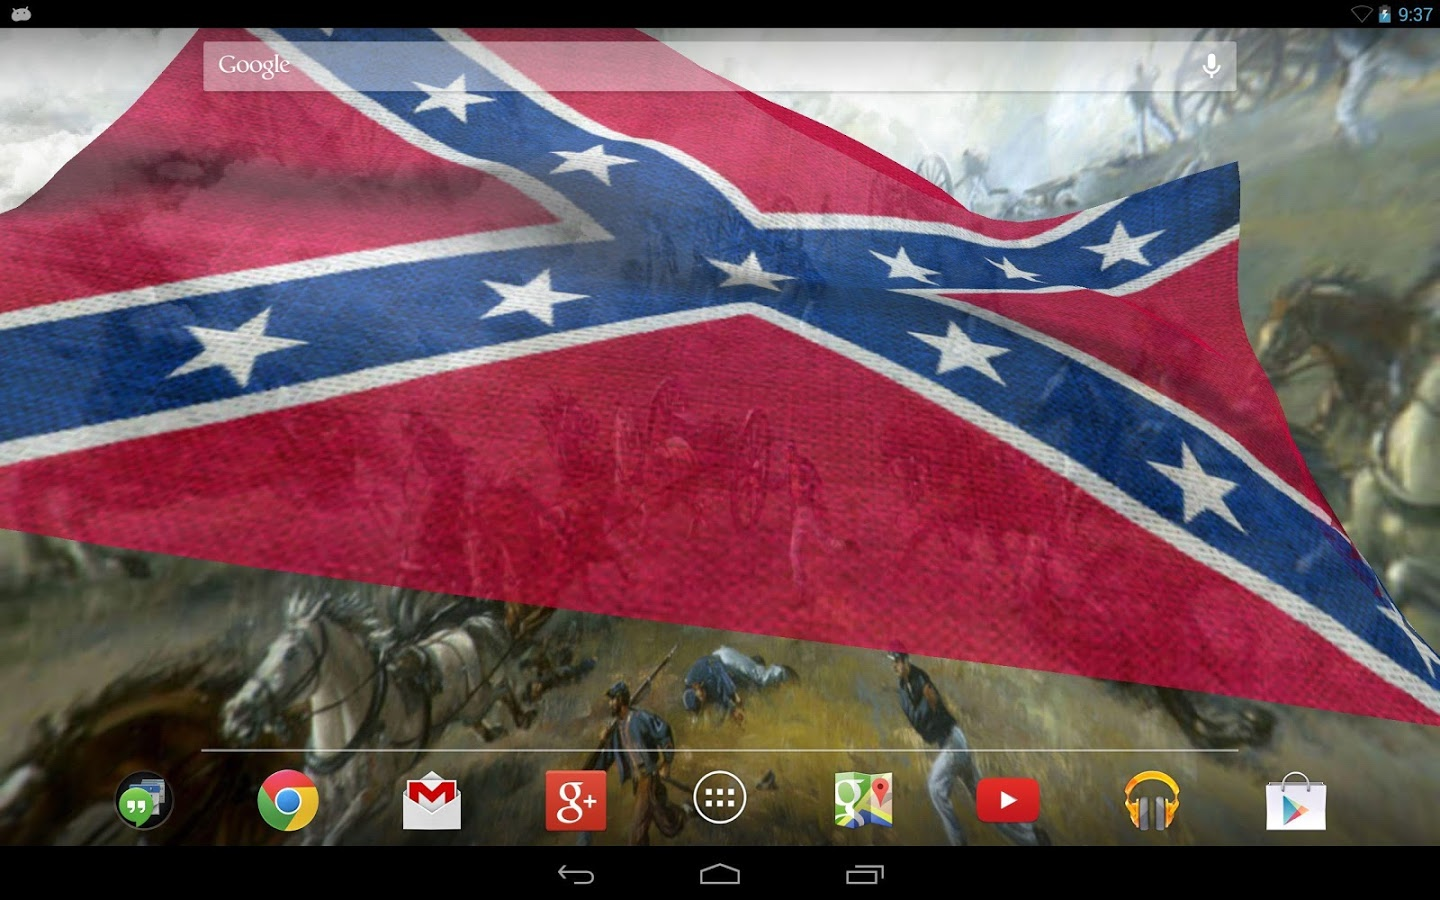 Rebel Flag Live Wallpaper   Android Apps on Google Play 1440x900